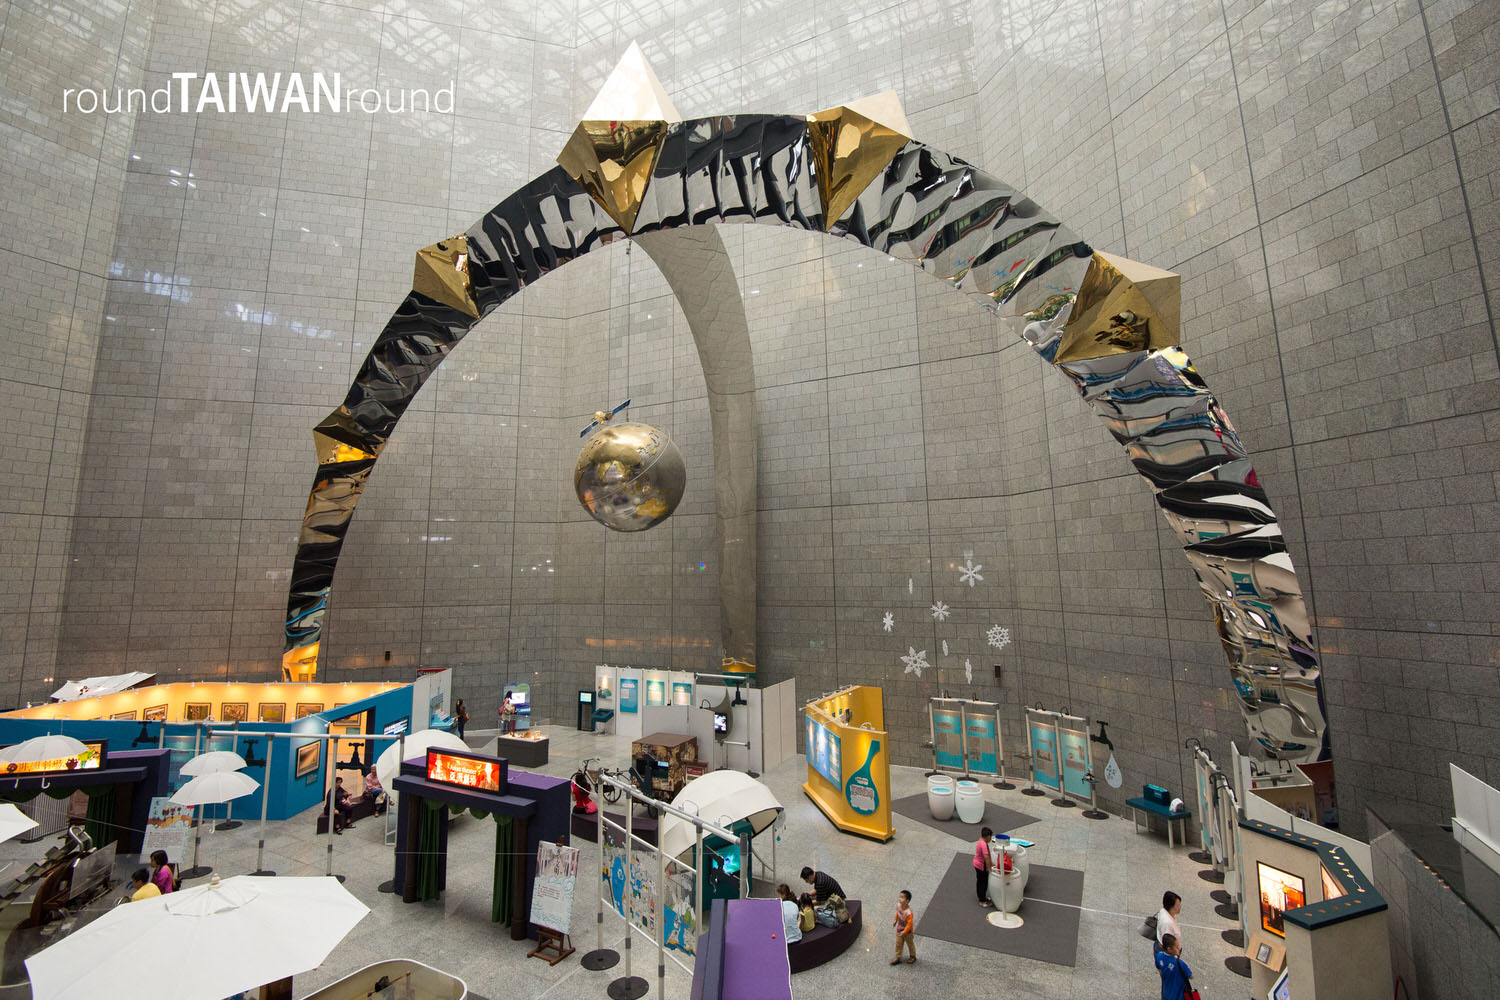 National Science & Technology Museum Kaohsiung, National Science and Technology Museum | Round Taiwan Round